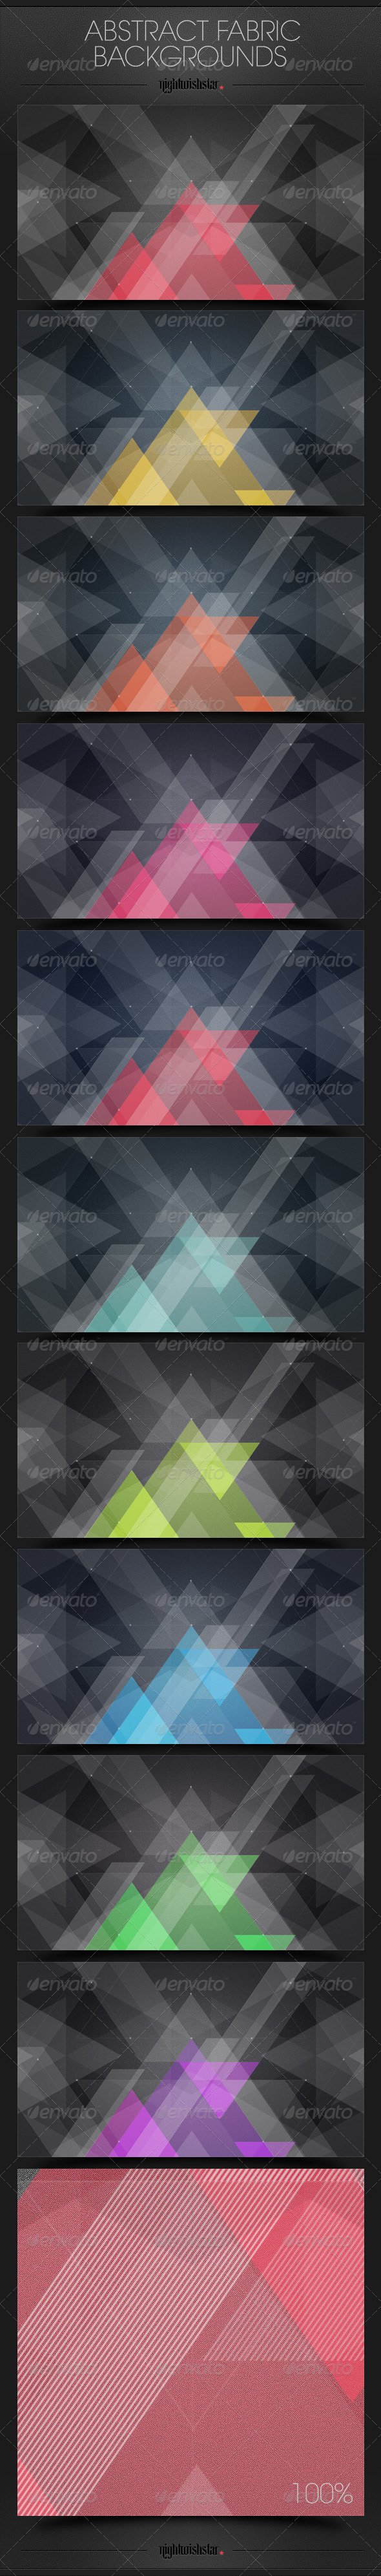 GraphicRiver Abstract Fabric Triangles Backgrounds 6510163